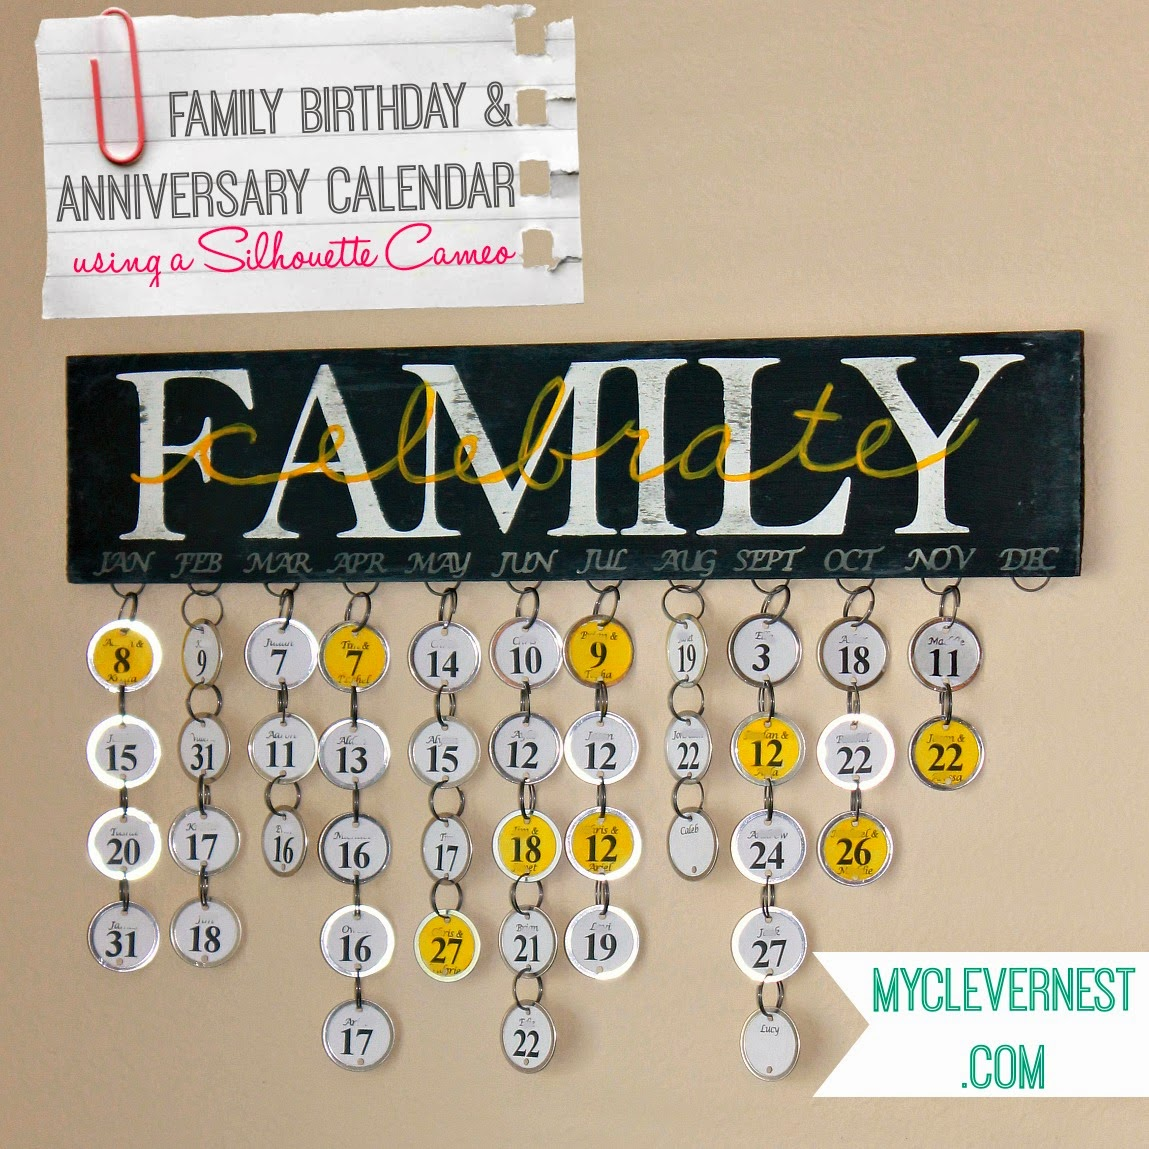 Celebrate Family Birthday Calendar by myclevernest. This comes with alternate instructions if you don't own a Cameo! #silhouette #yellowgray #handpainted #typography #subwayart #birthdaycalendar #clevernest